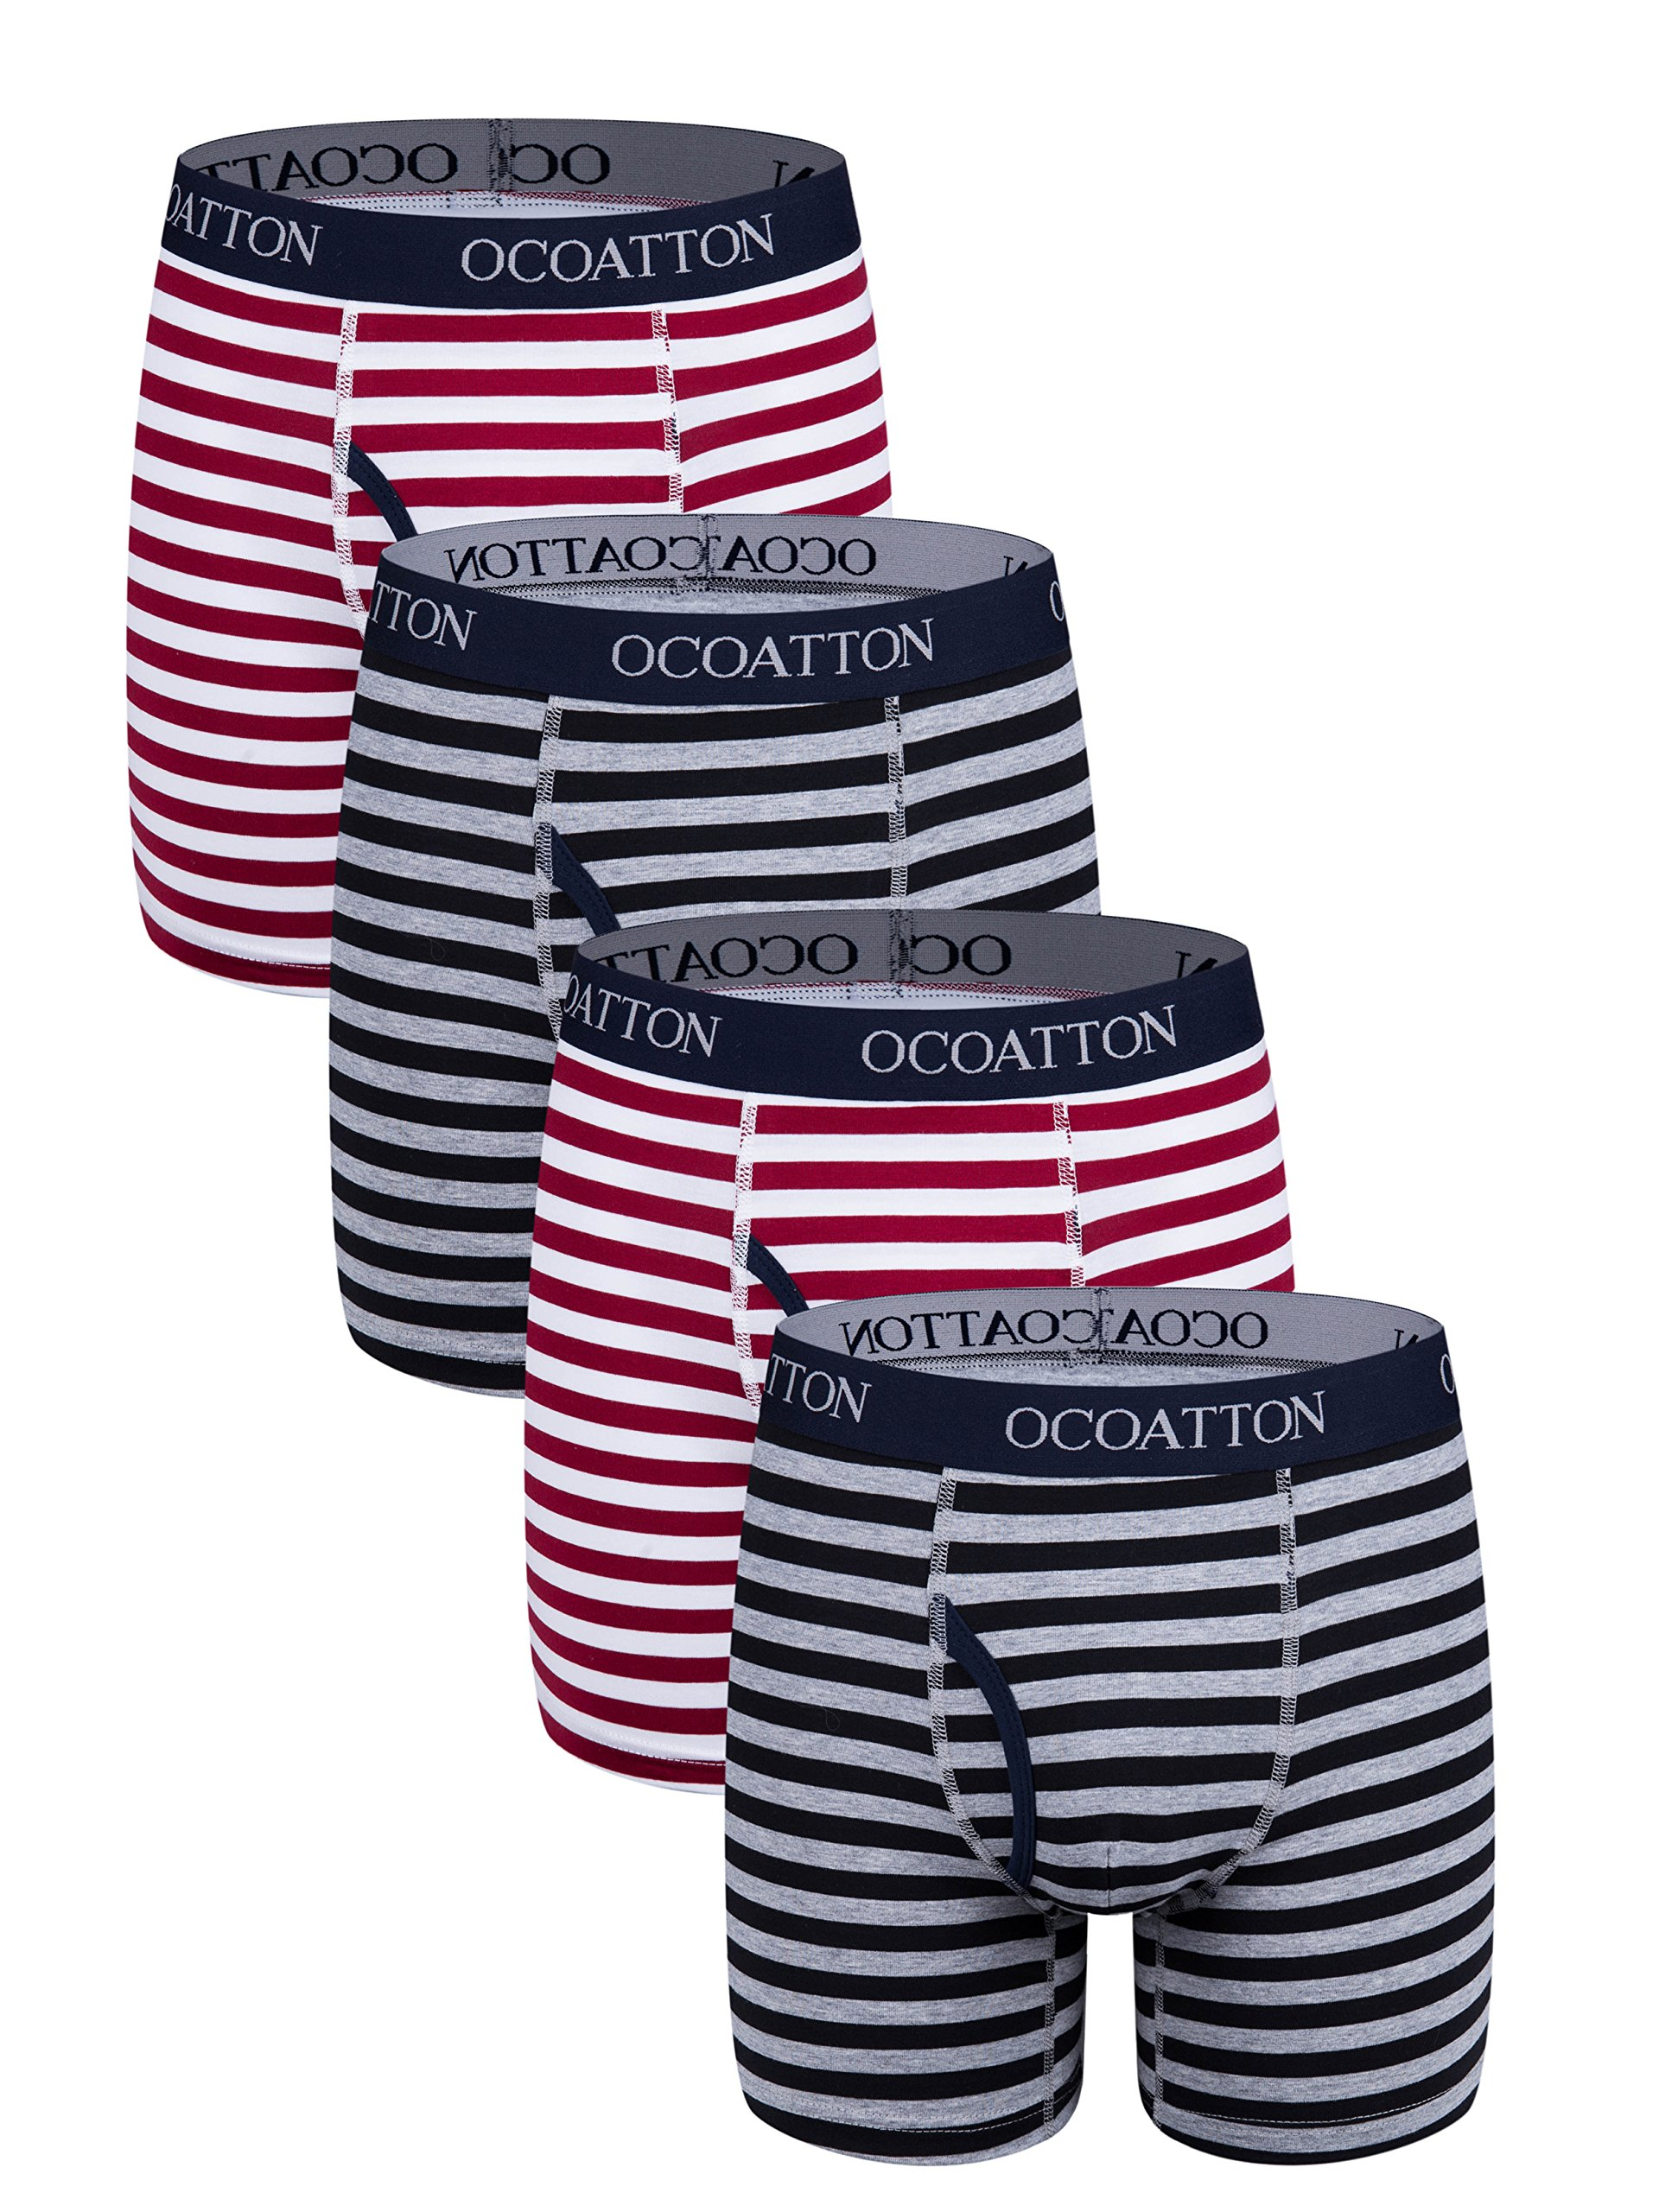 Ocoatton Striped Boxer Briefs Soft Cotton Underwear For Men With Front Fly 4-Pack (M, 2black/2win red)